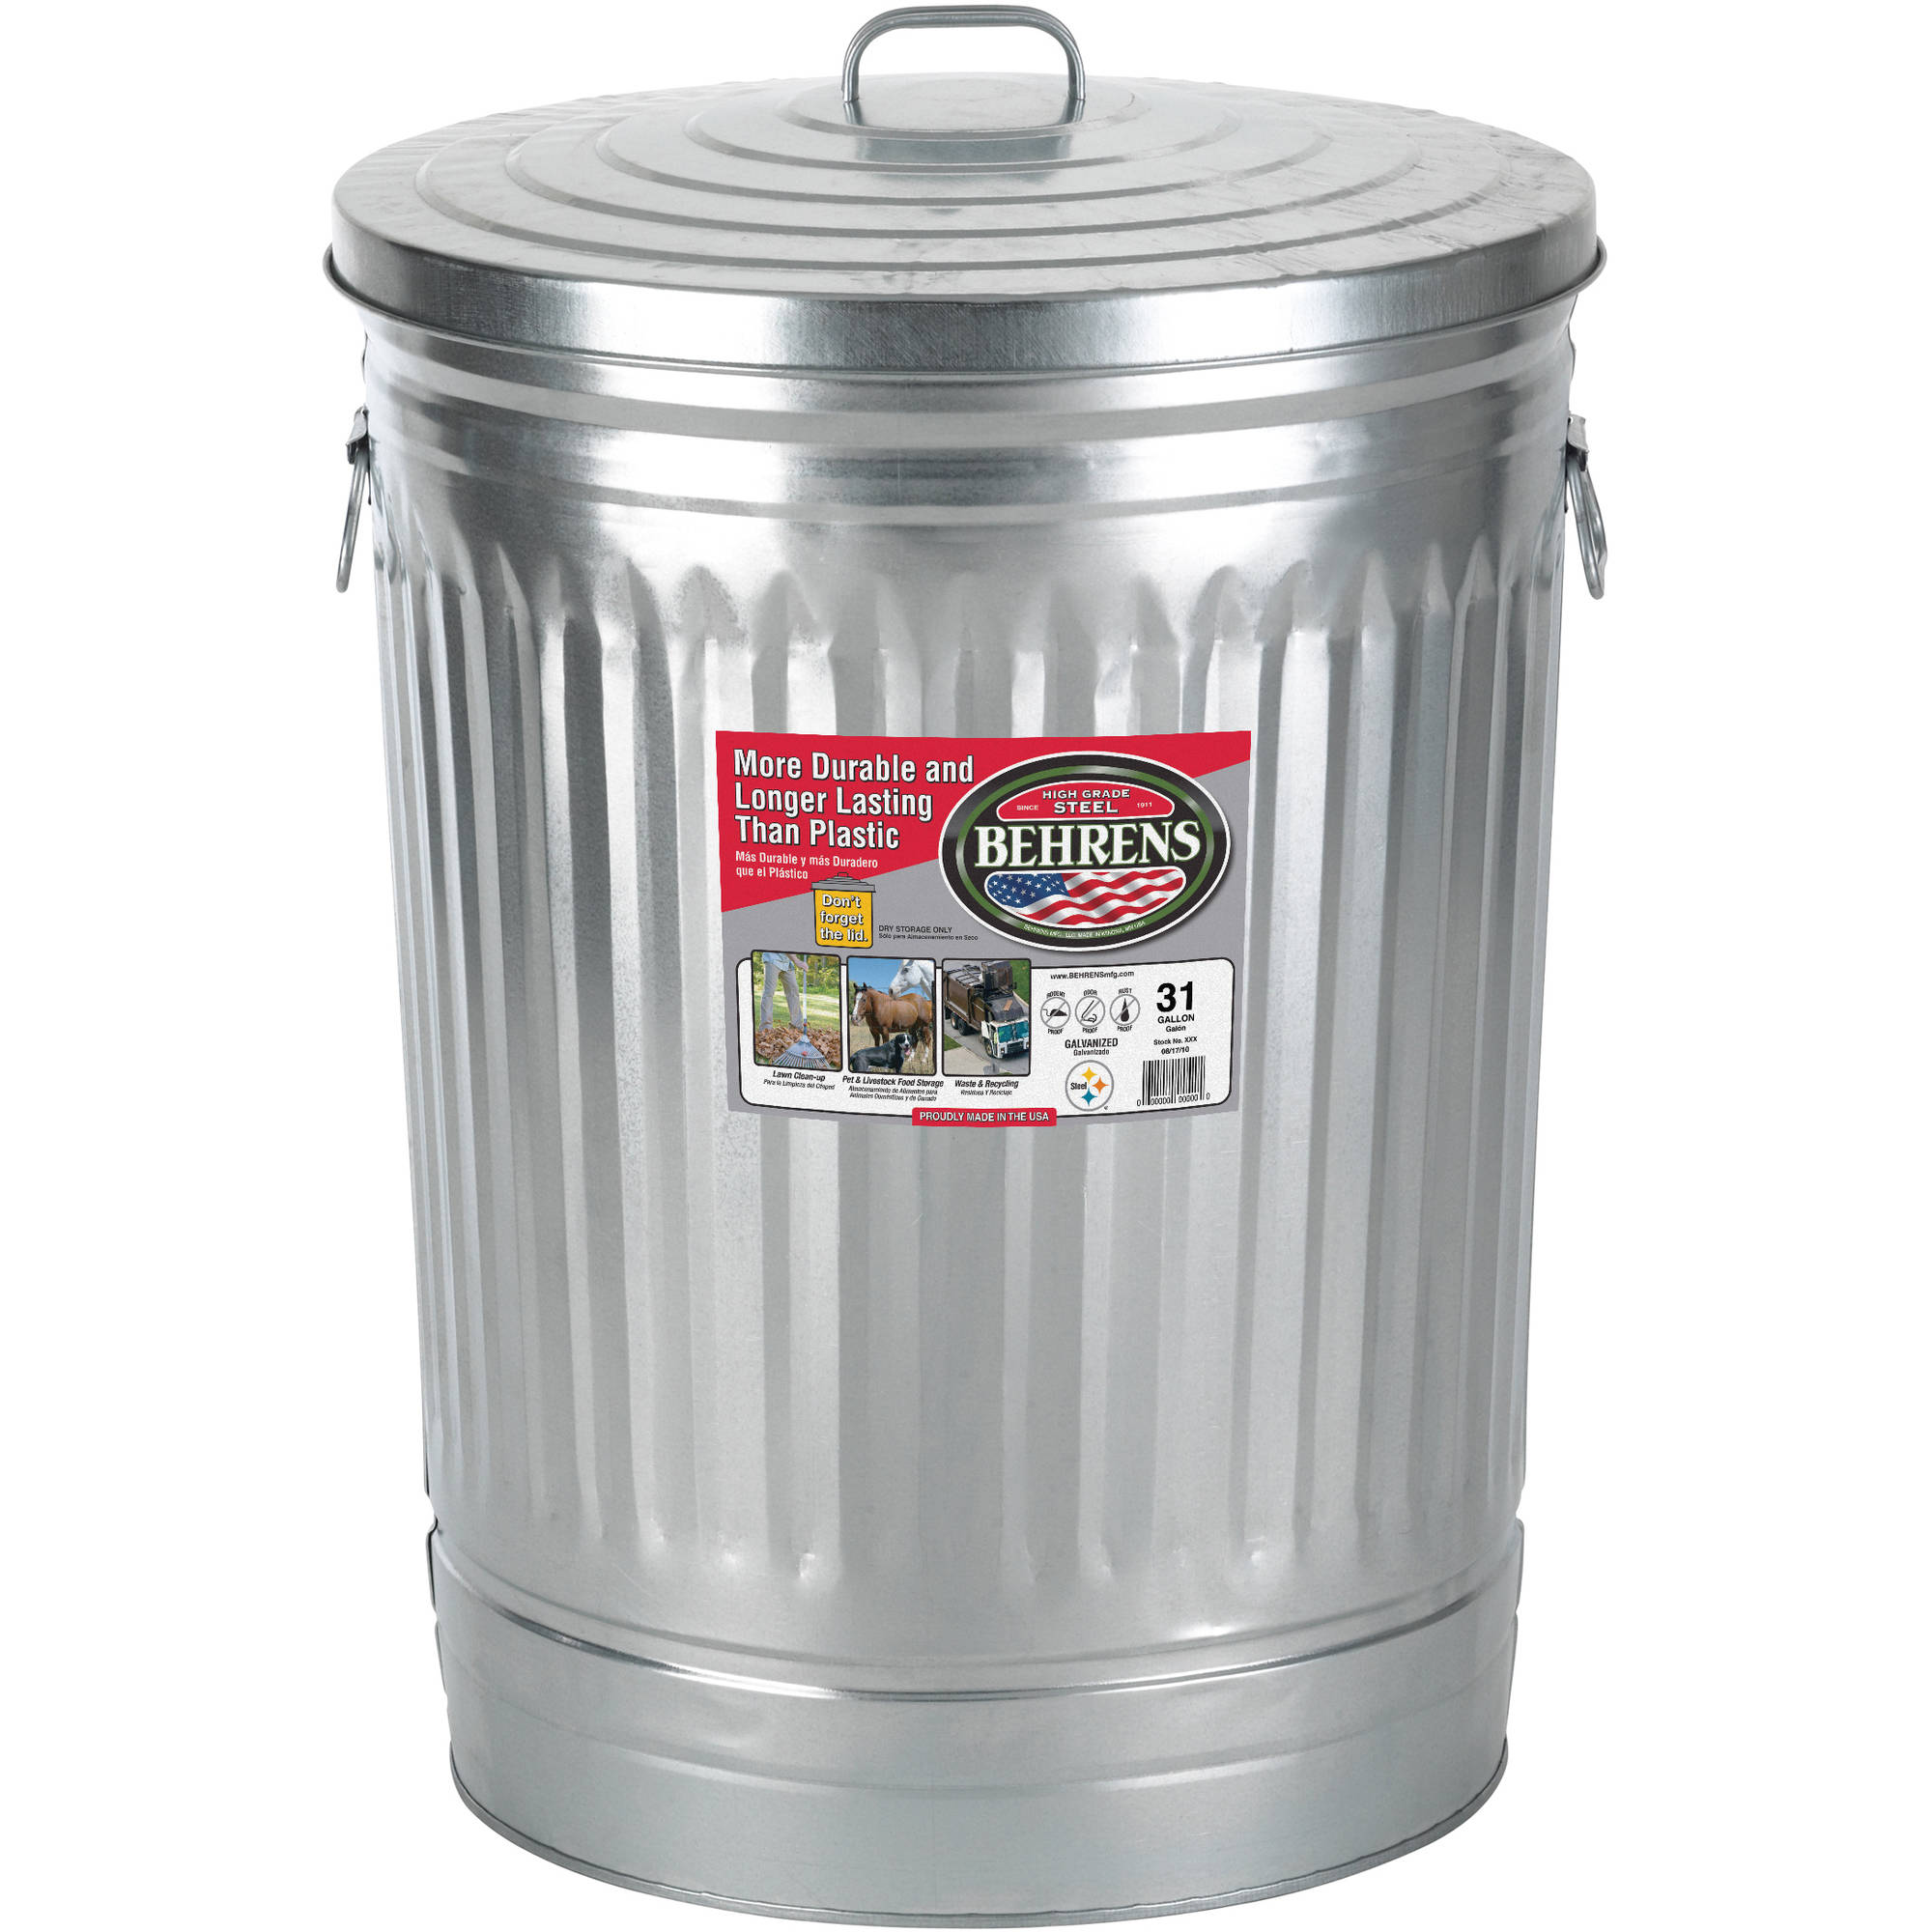 Behrens 31 Gallon Steel Trash Can. Galvanized Trash Cans